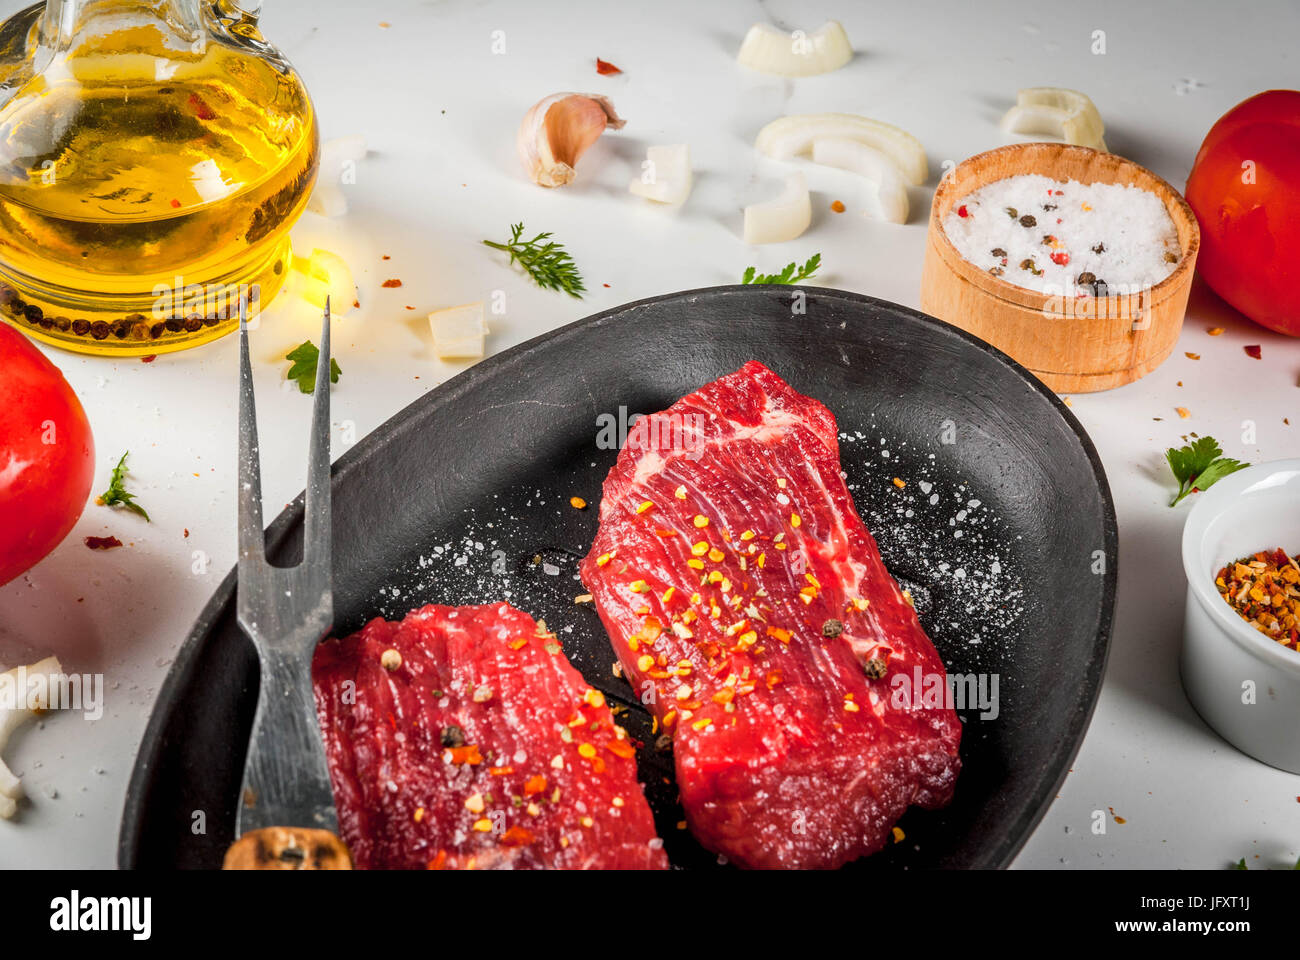 Meat, beef. Fresh raw steaks in a frying pan. Spices (salt, pepper), fresh vegetables - tomatoes, carrots, garlic, onions. On a white marble table, wi Stock Photo